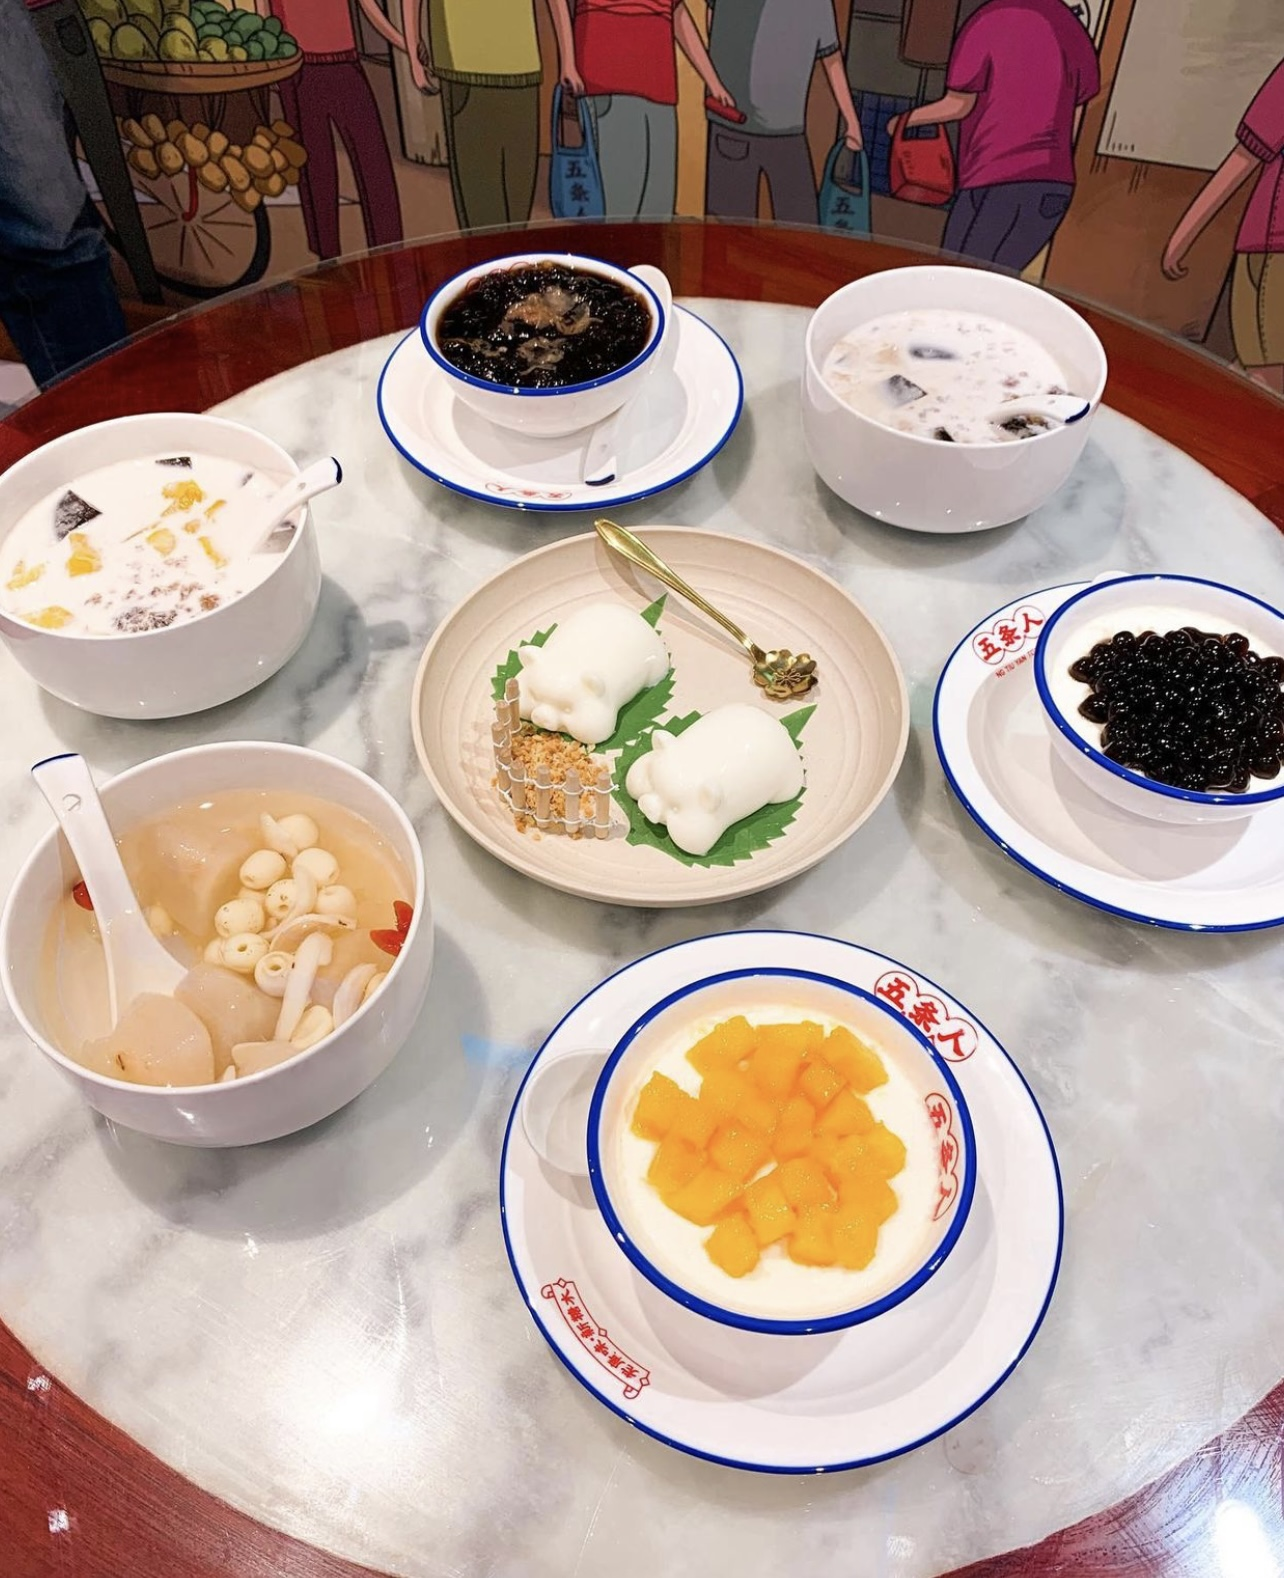 Round table, with table 6 bowls of assorted Cantonese desserts and a coconut jelly pig pudding in the centre.